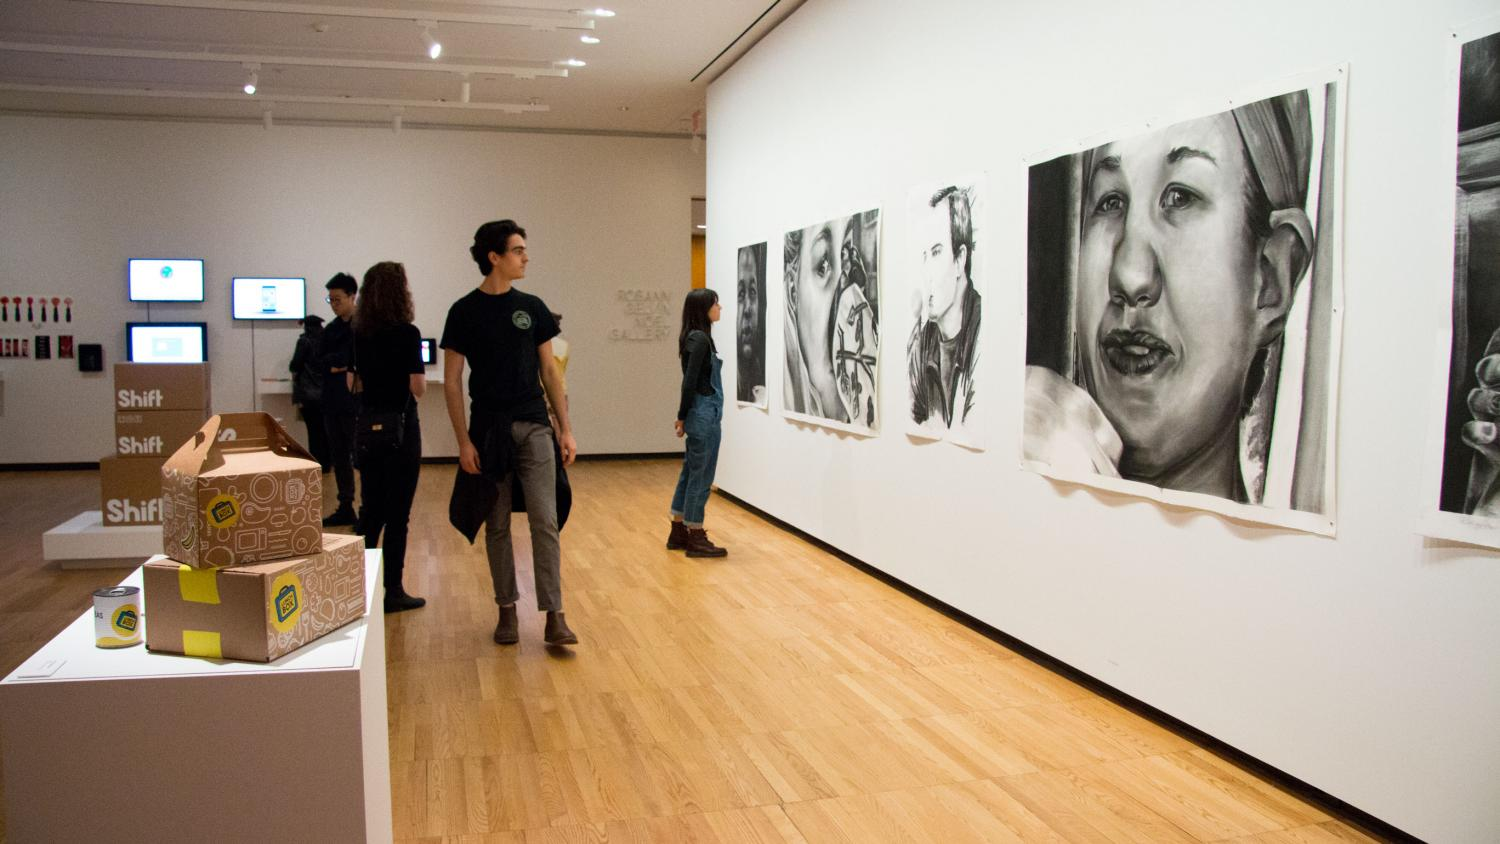 School of Art + Design Bachelor of Fine Arts Exhibition, installation at Krannert Art Museum, 2017.